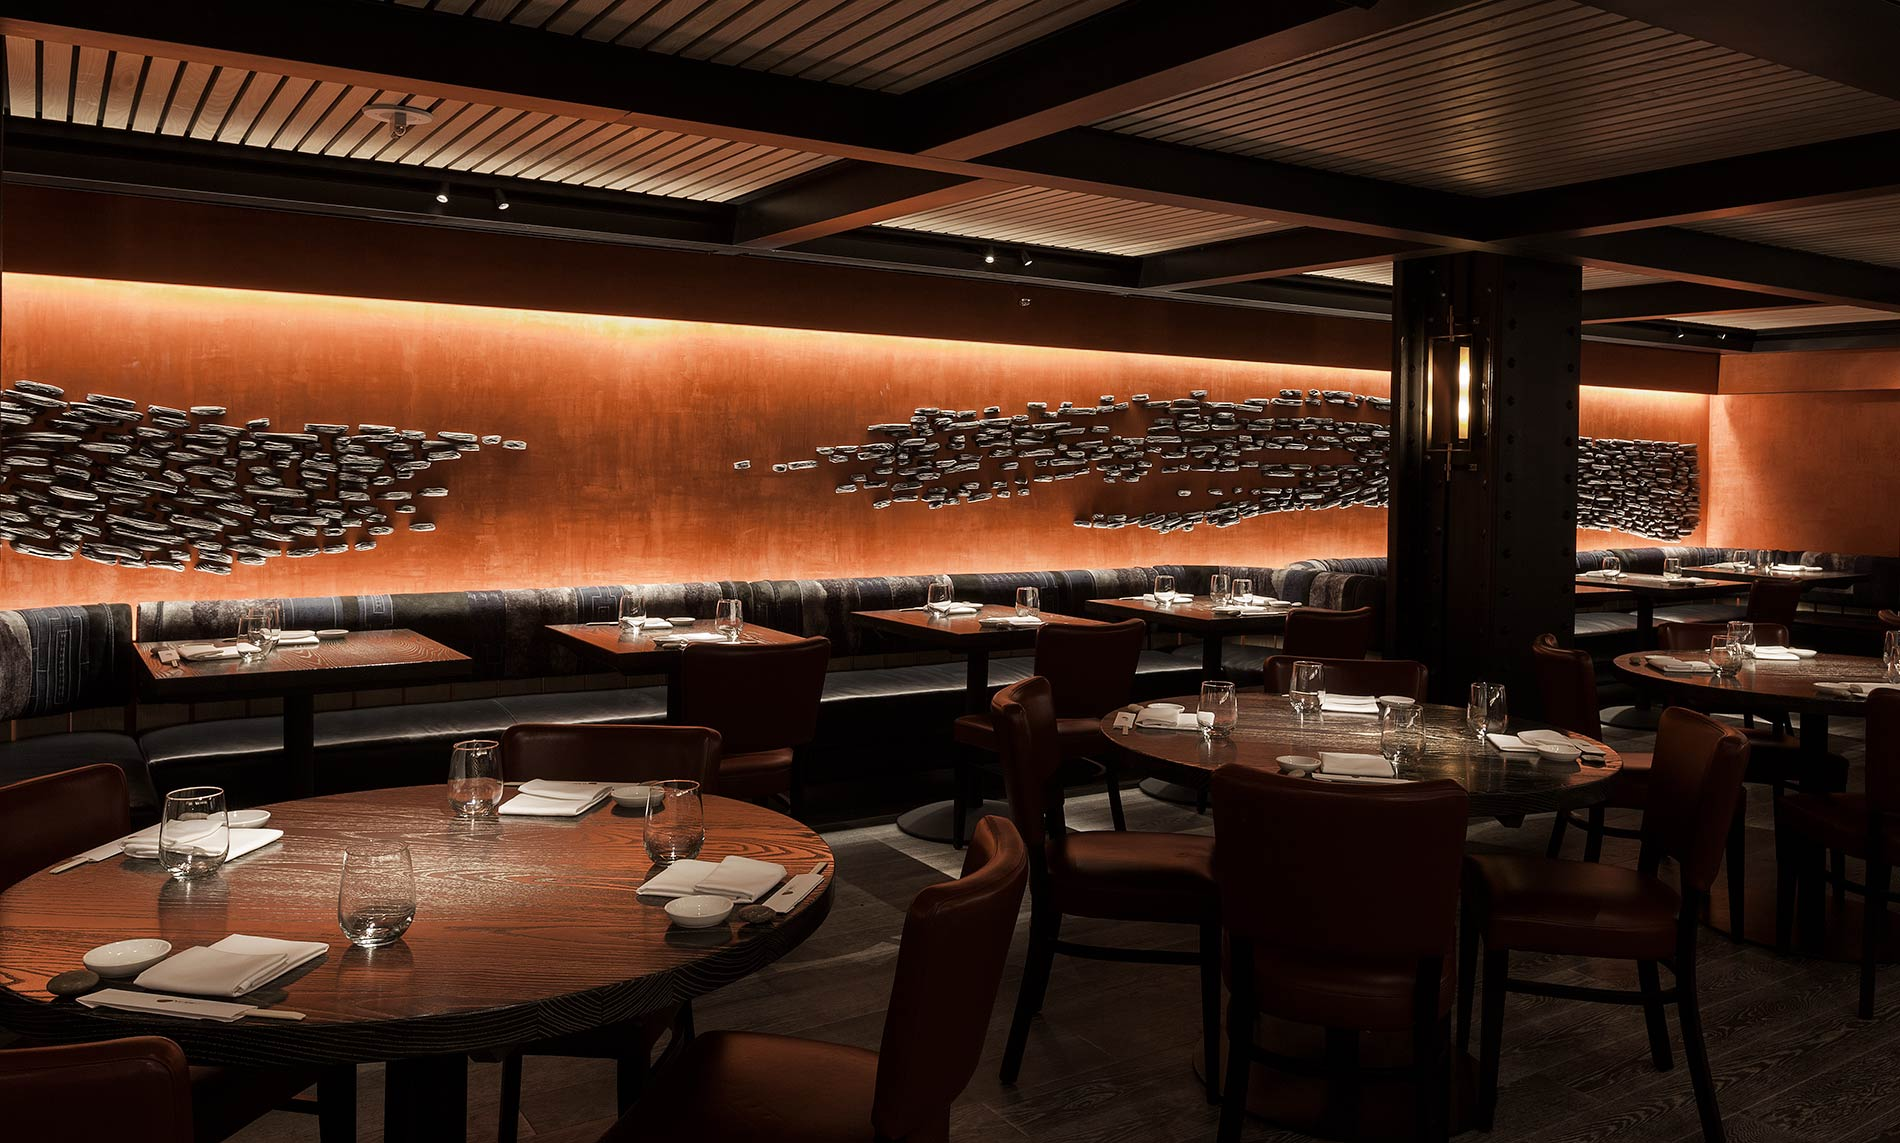 Nobu downtown pascale girardin for Restaurant interior design app